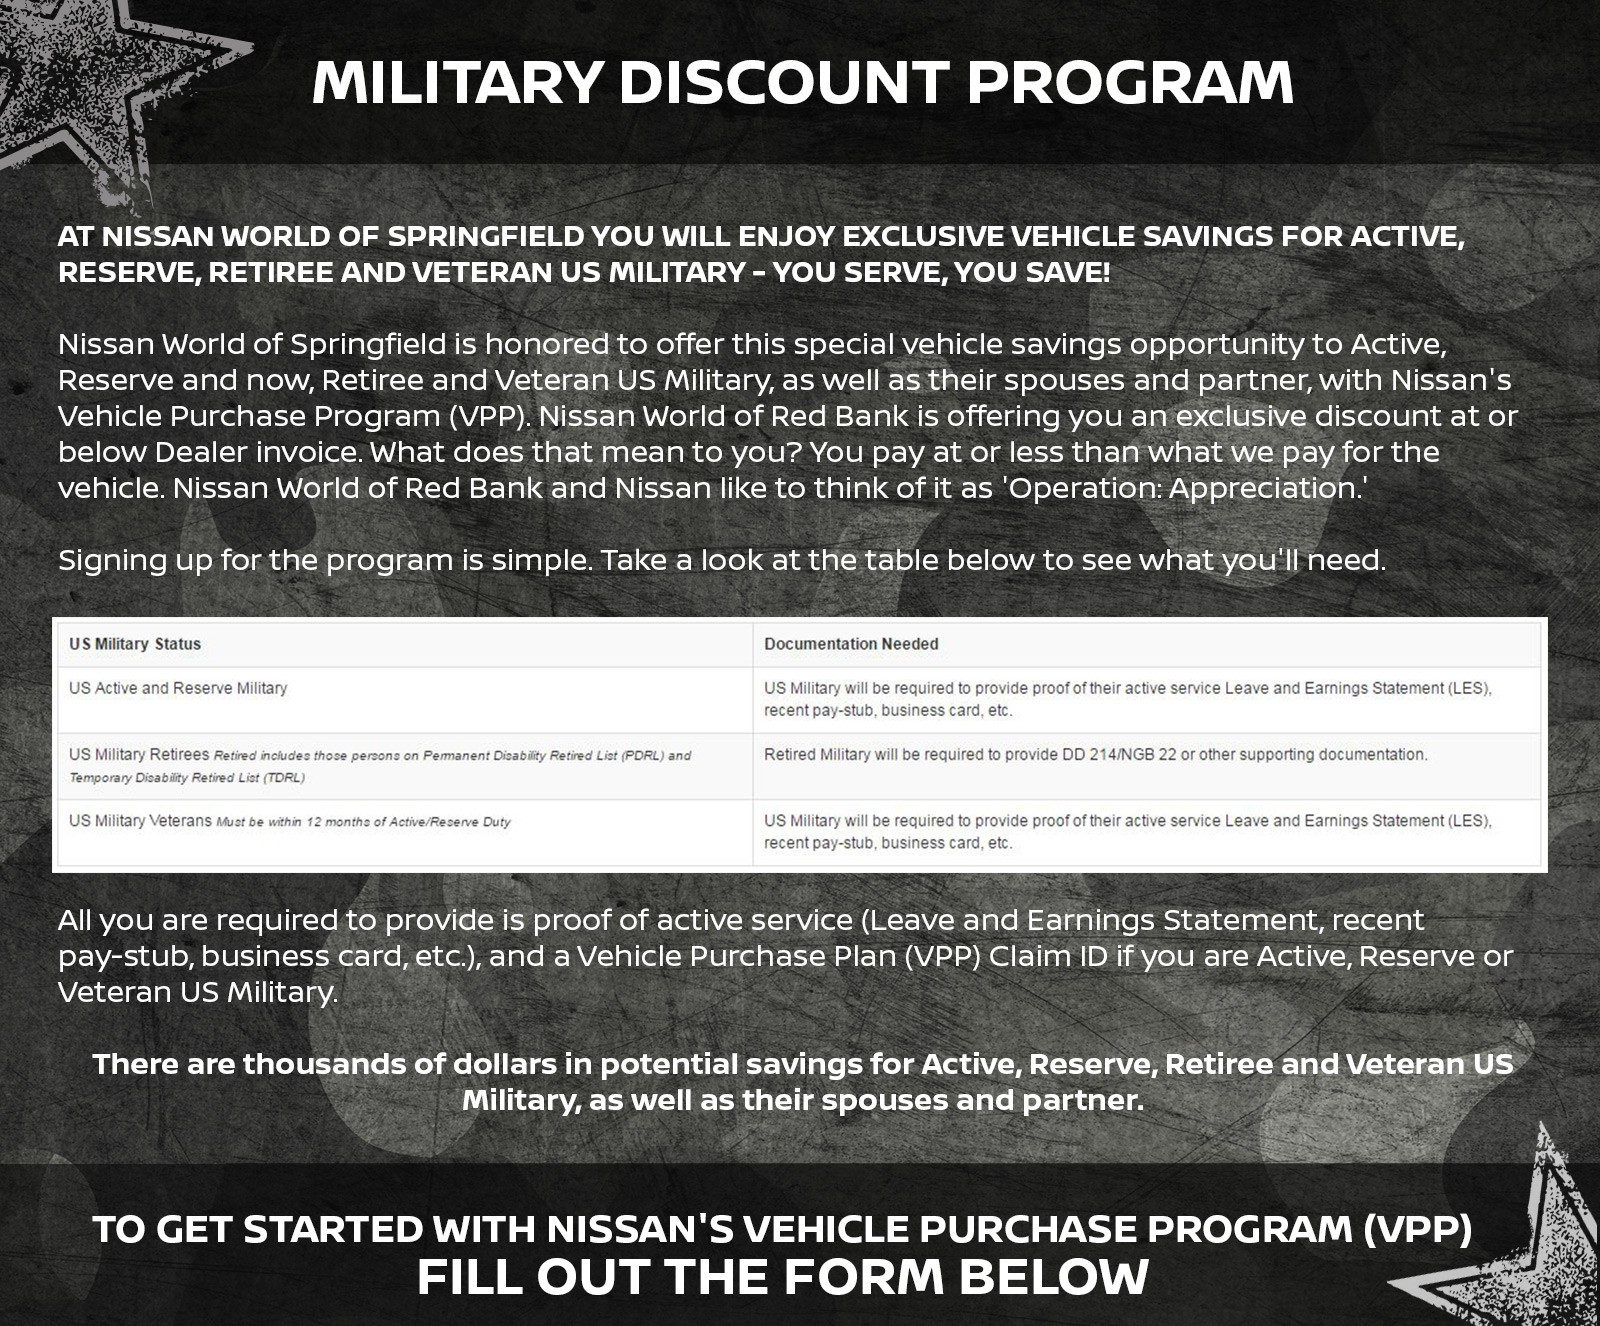 New Jersey Nissan Discounts for Military